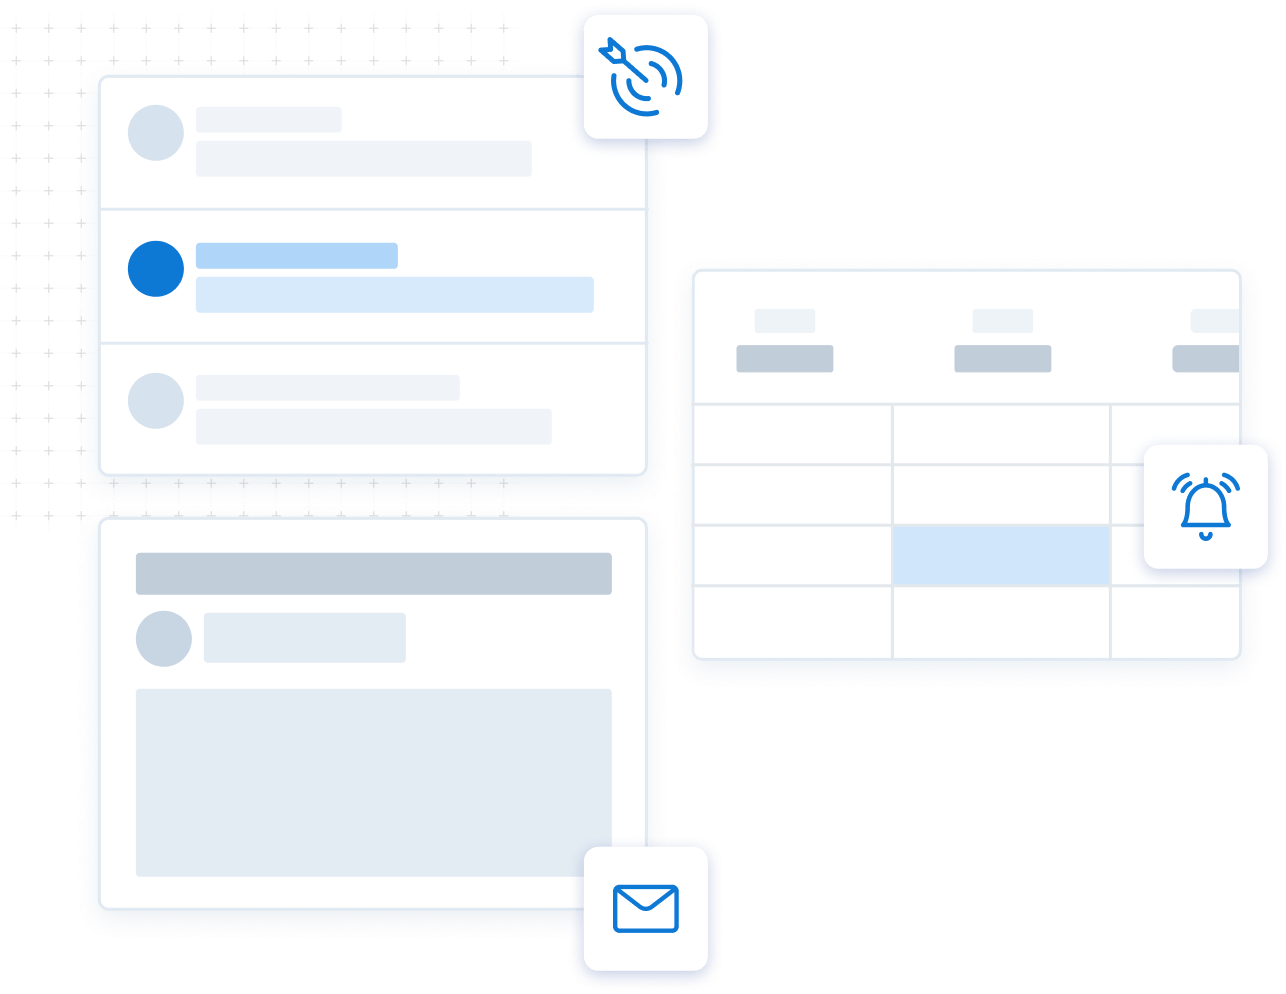 Graphic showing a contact list, calendar, and email template